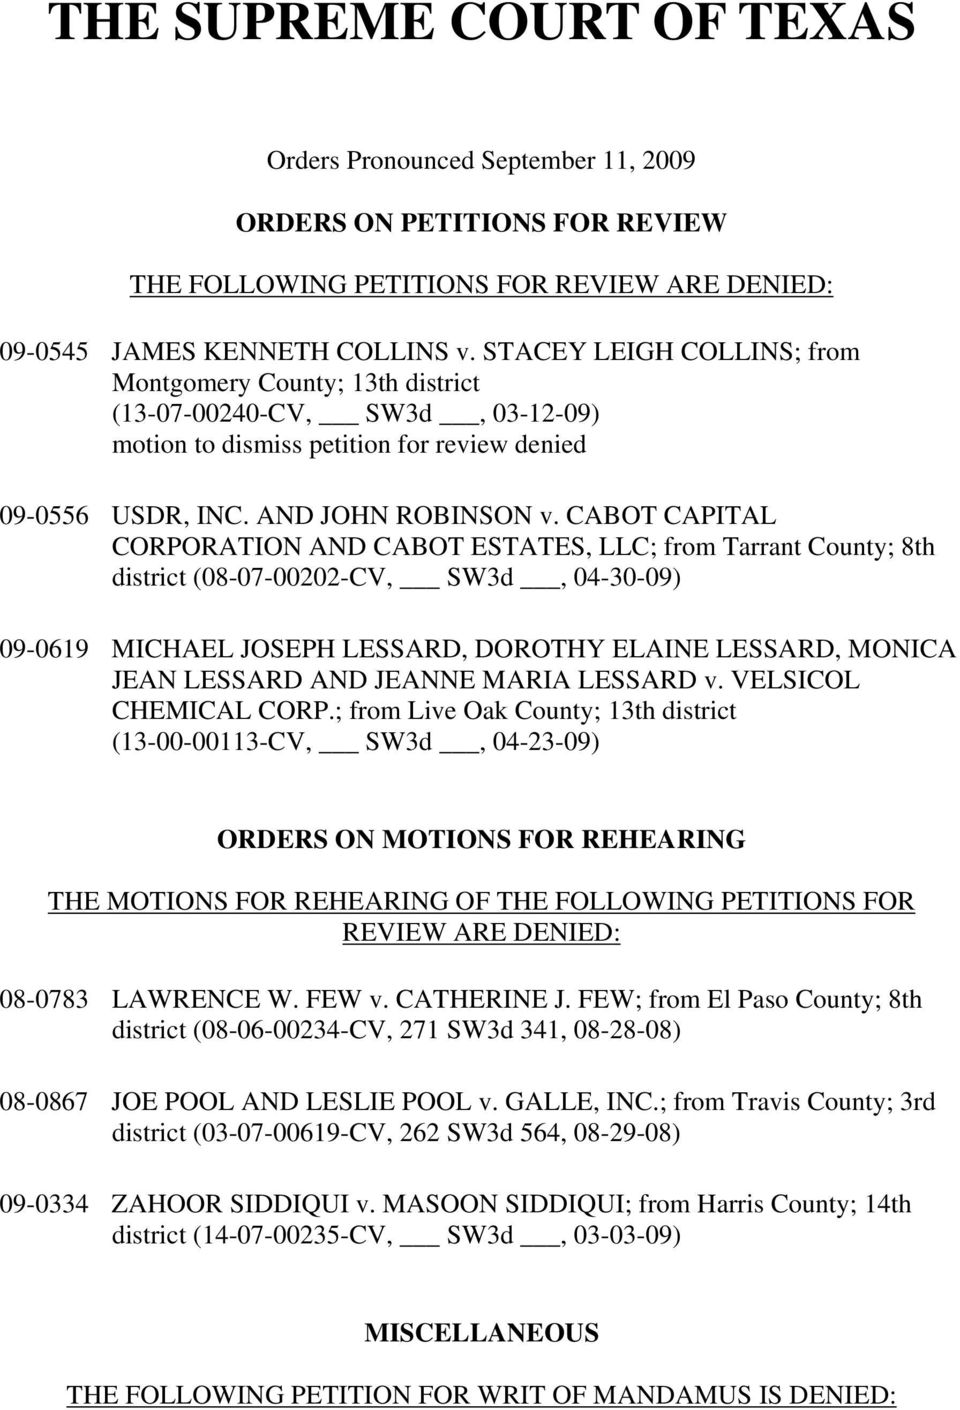 CABOT CAPITAL CORPORATION AND CABOT ESTATES, LLC; from Tarrant County; 8th district (08-07-00202-CV, SW3d, 04-30-09) 09-0619 MICHAEL JOSEPH LESSARD, DOROTHY ELAINE LESSARD, MONICA JEAN LESSARD AND